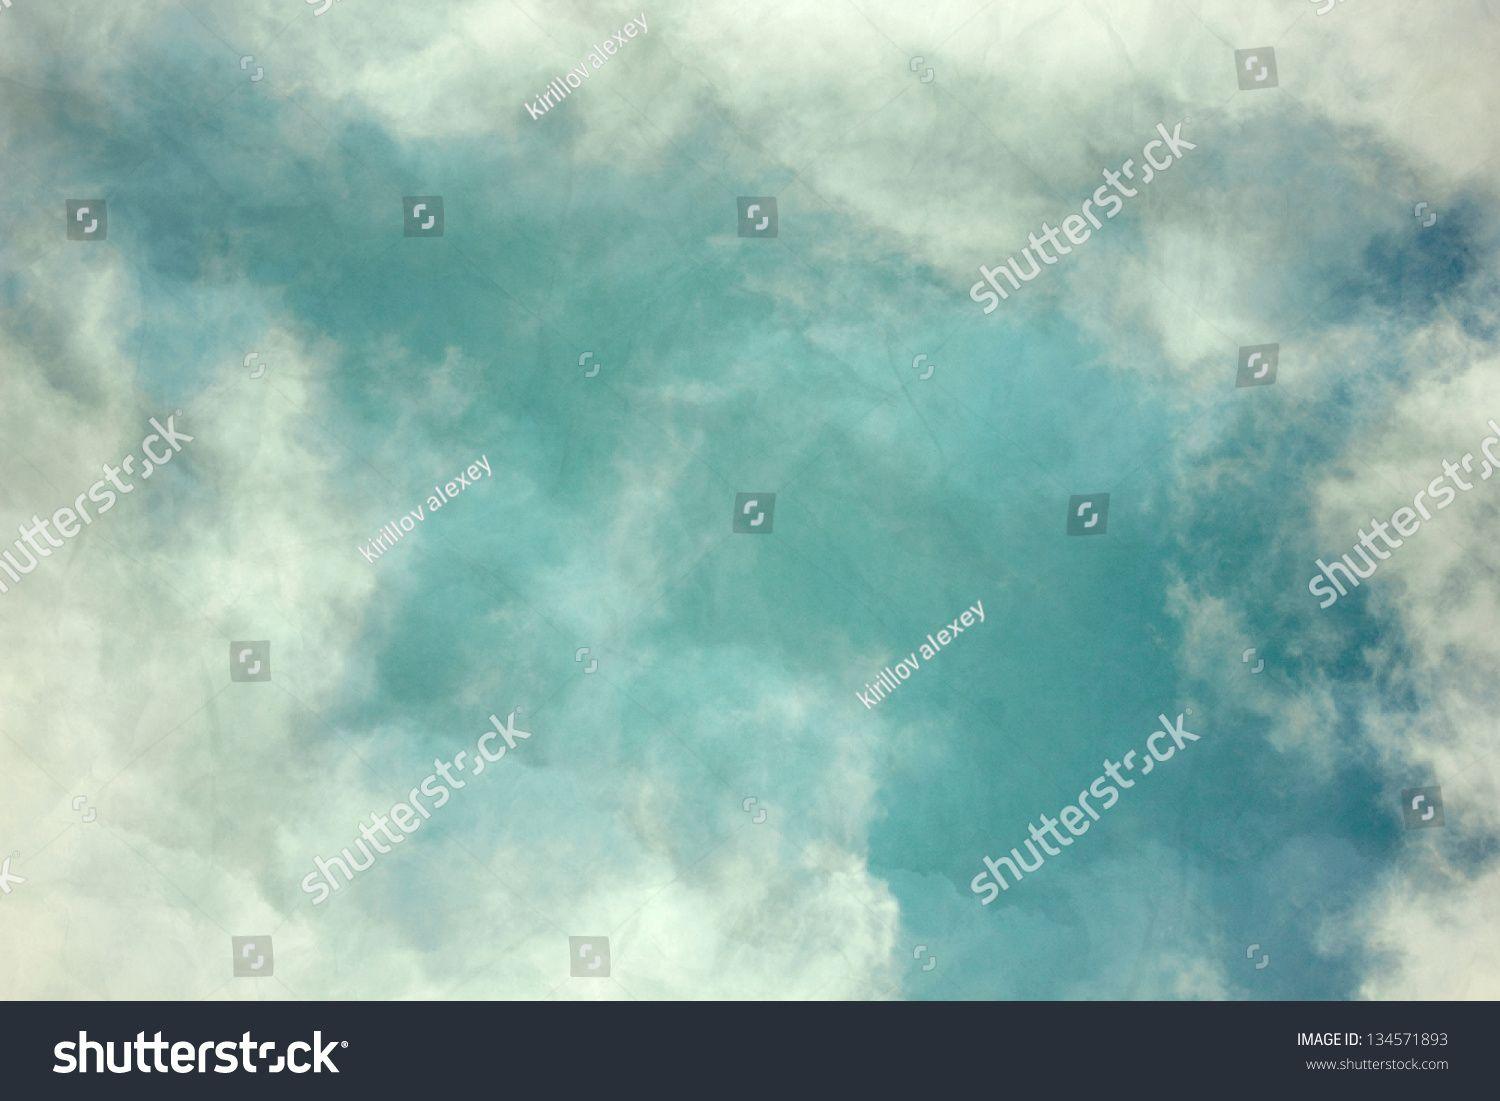 Vintage Background In The Blue Shade With Clouds Sponsored Ad Background Vintage Blue Clouds Background Vintage Blue Clouds Portfolio Design